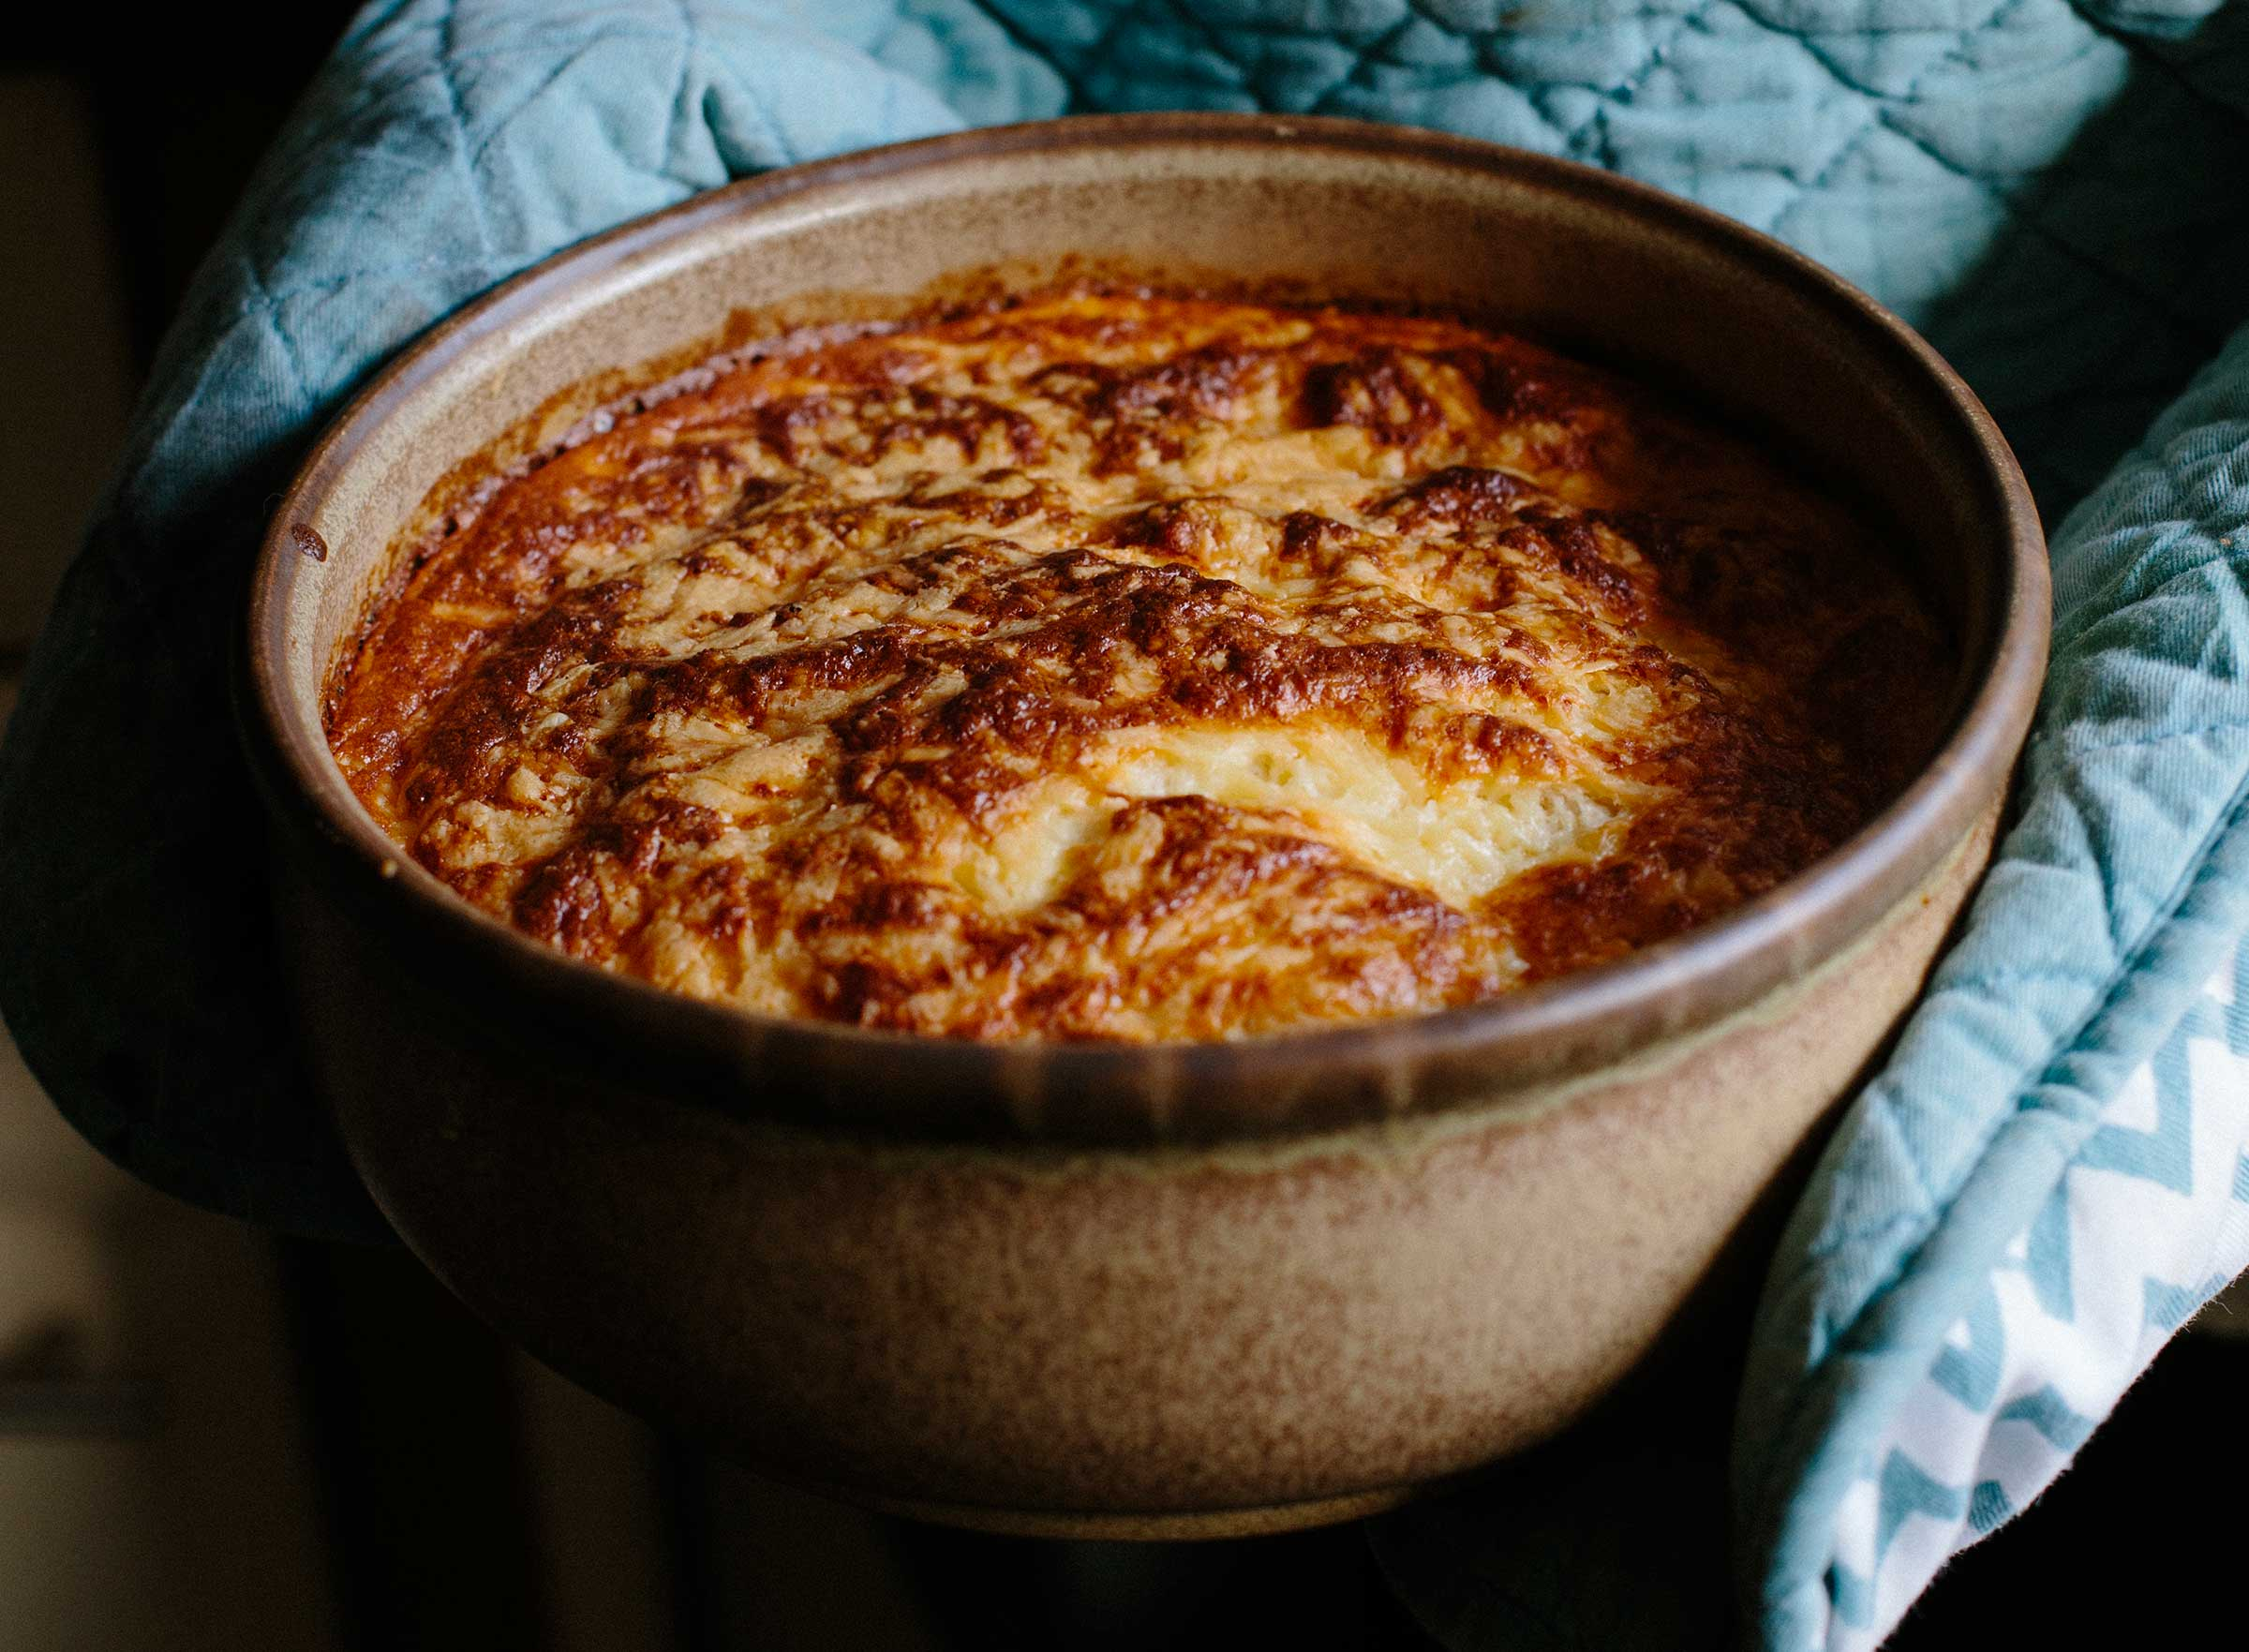 welsh cheese bread pudding recipe stale bread food waste